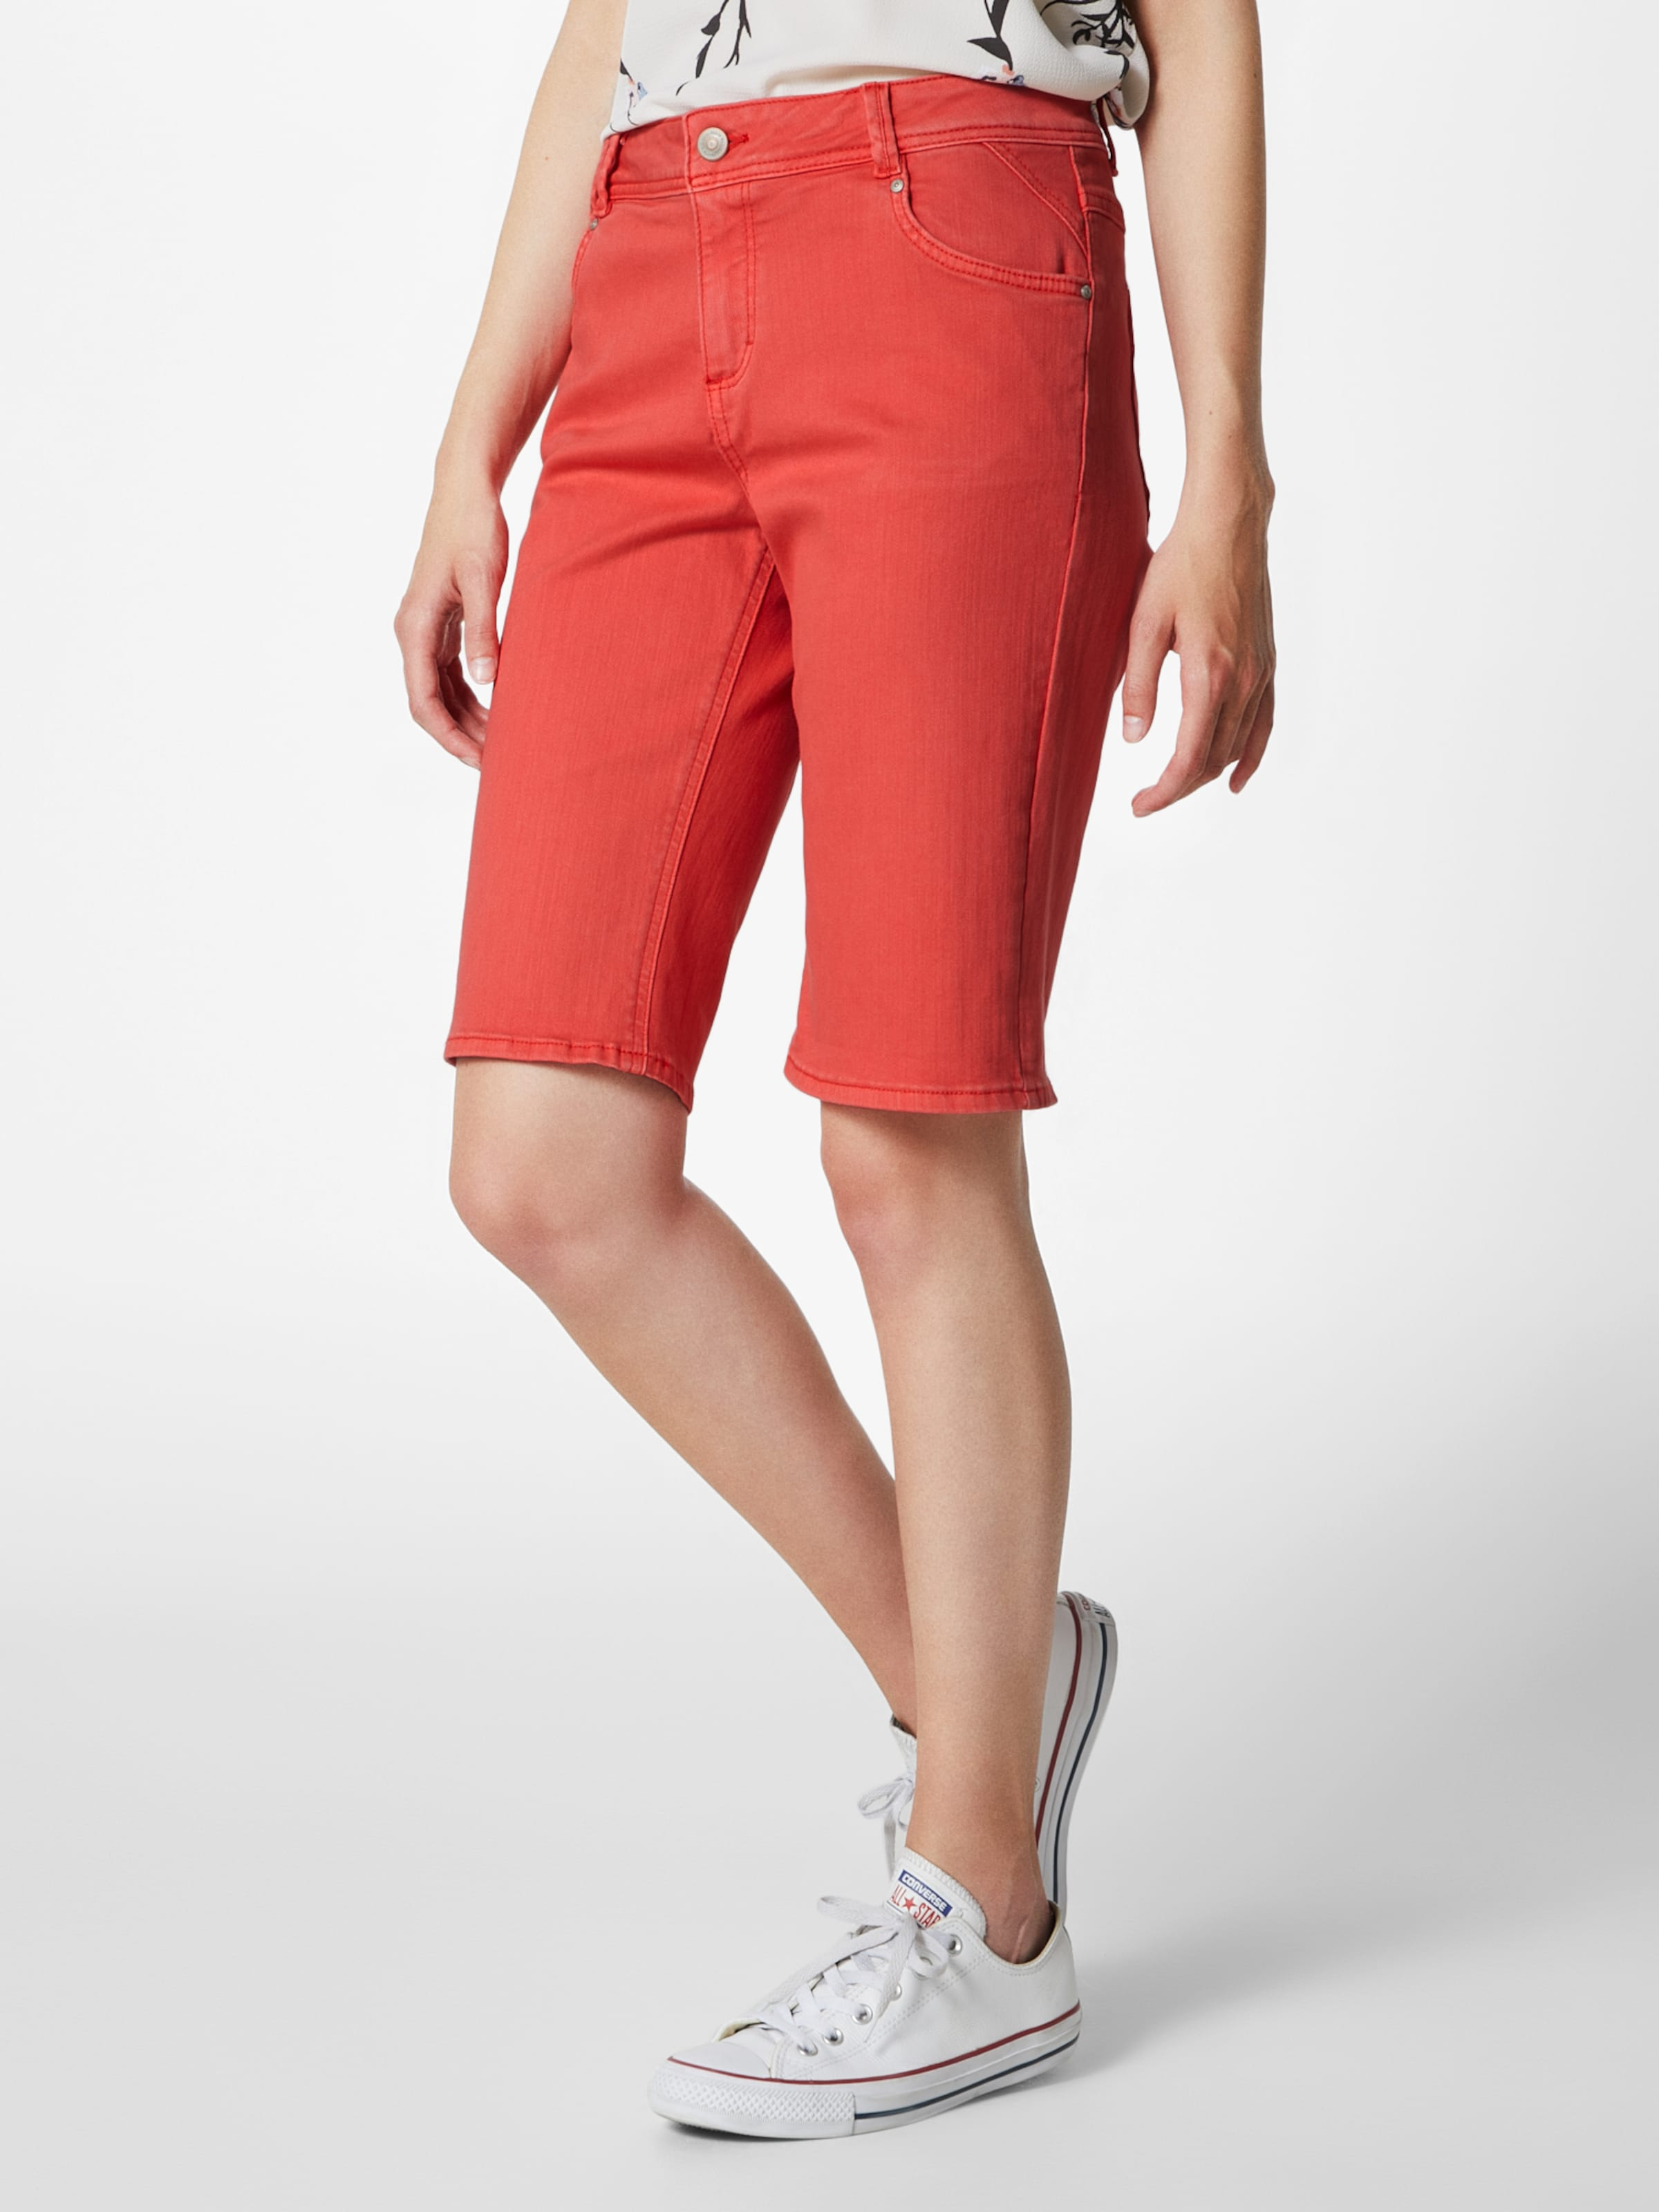 oliver Red Hose Label Bermuda In S Hellrot POkXiuZ